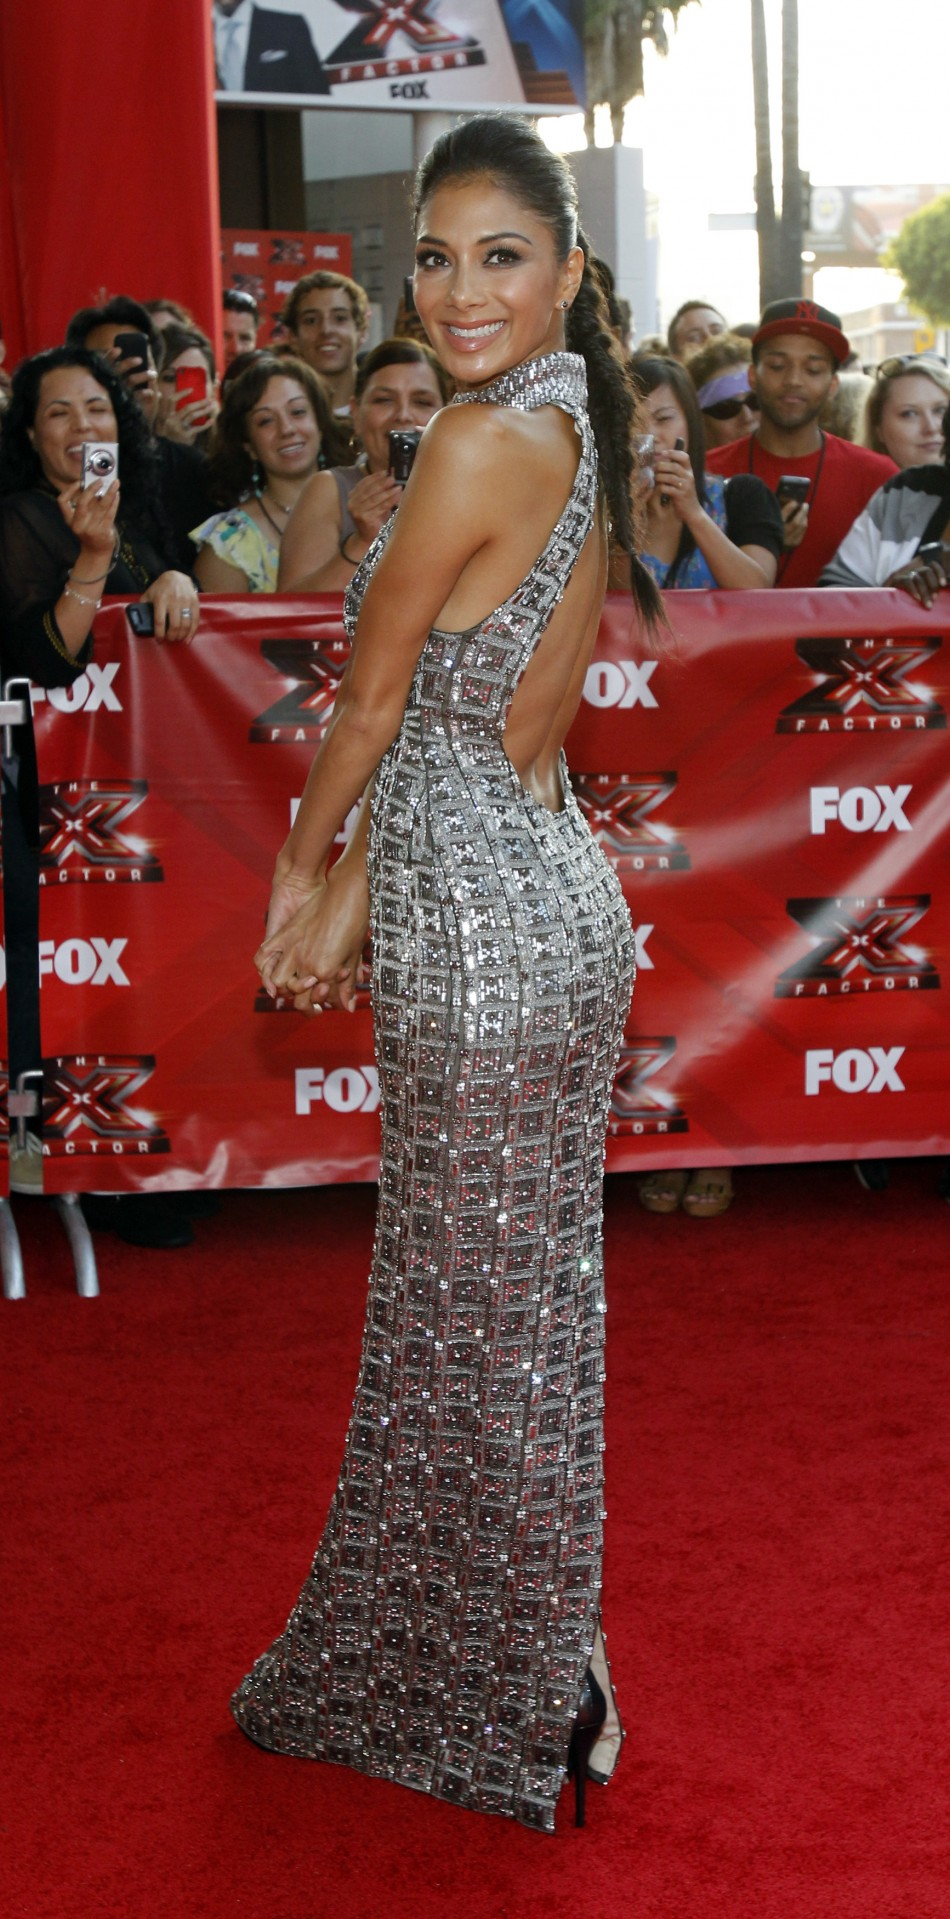 Nicole Scherzinger poses at the world premiere of quotThe X Factorquot in Hollywood